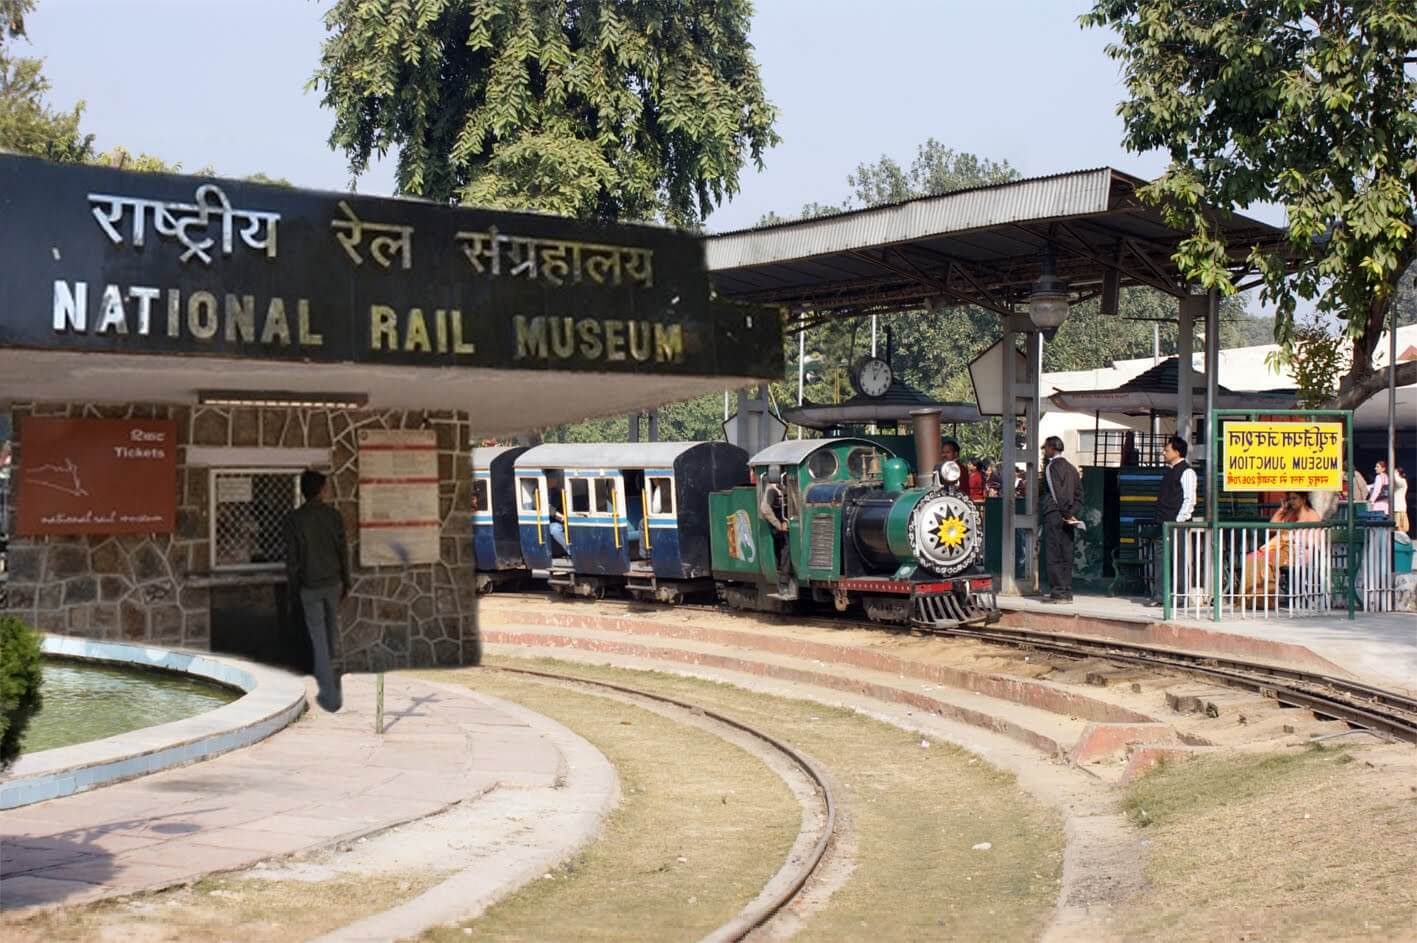 163 years old collection of rails in Indian Rail Museum